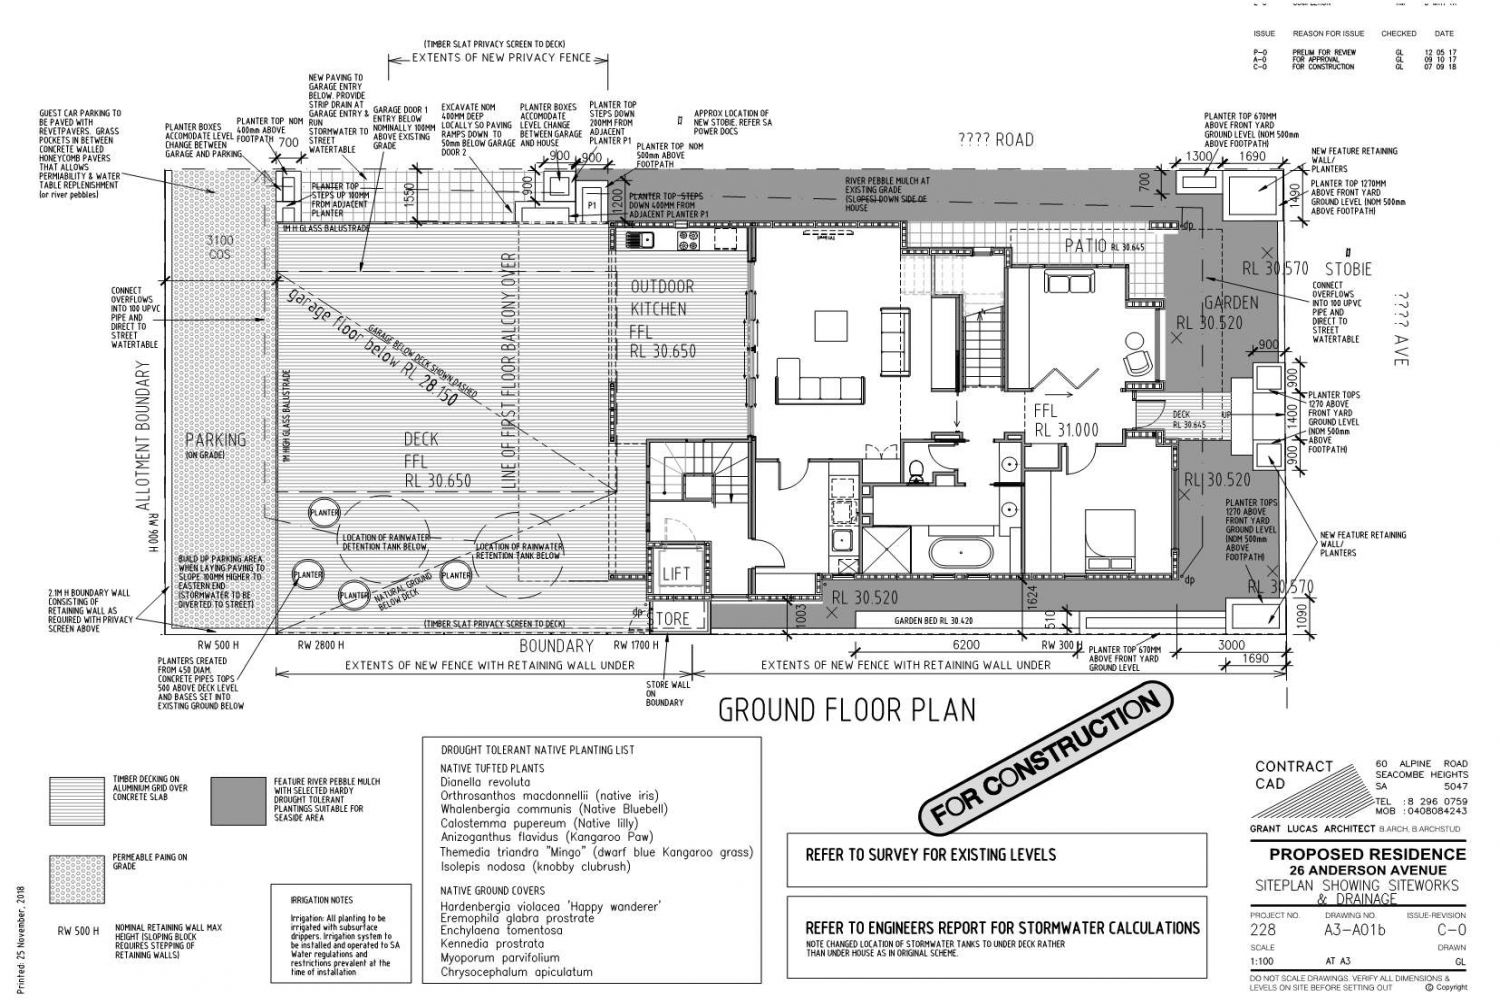 Owner Builder Zego Construction  2 storey Home at Port Noarlunga: Working Drawings Sheet 4  Siteplan with Drainage